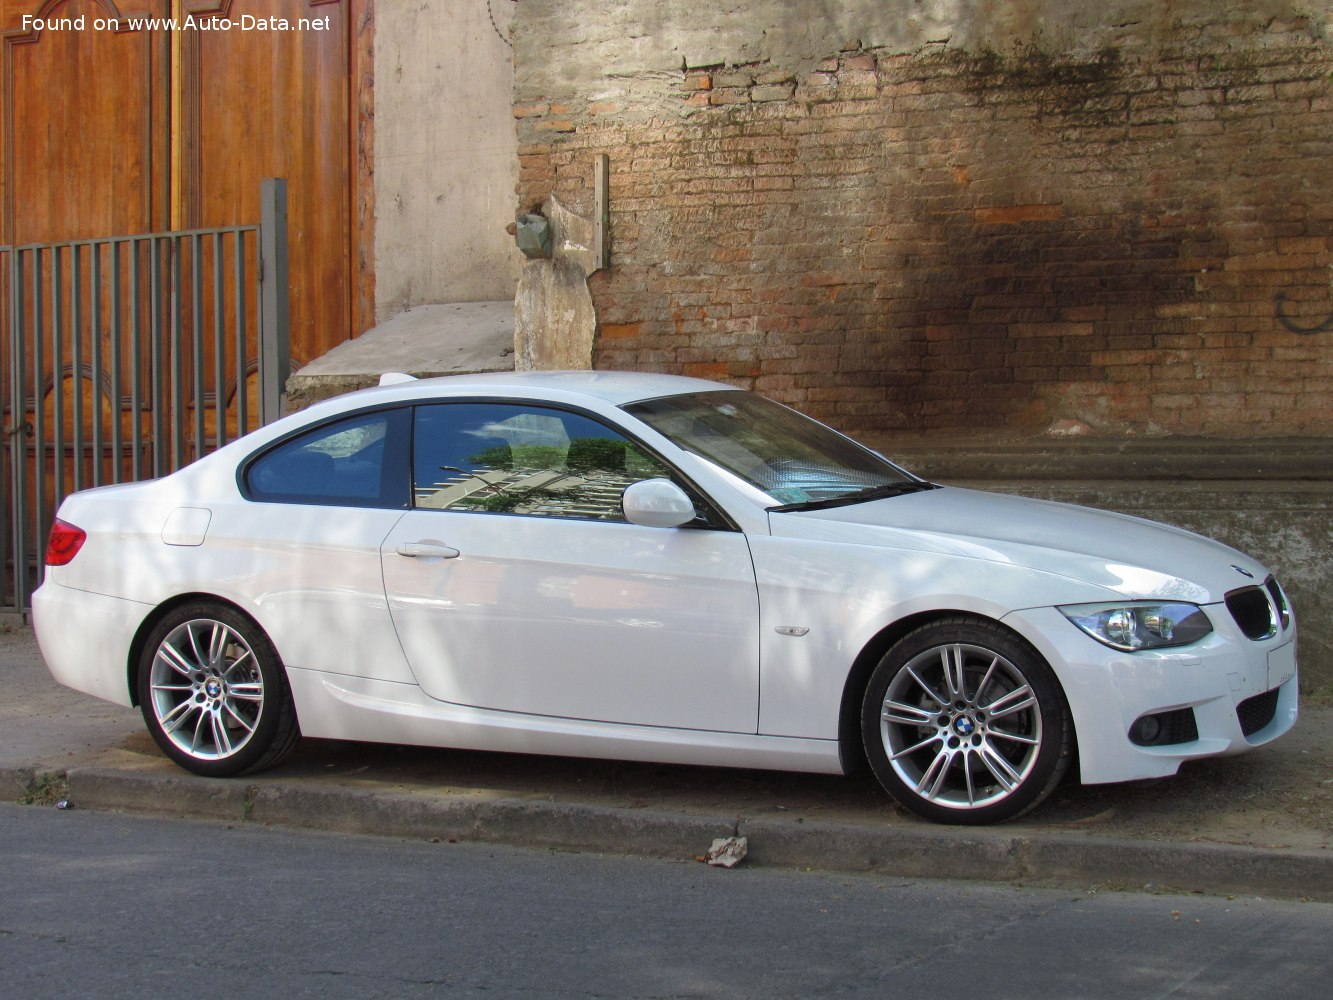 2010 Bmw 3 Series Coupe E92 Facelift 2010 318i 143 Hp Technical Specs Data Fuel Consumption Dimensions